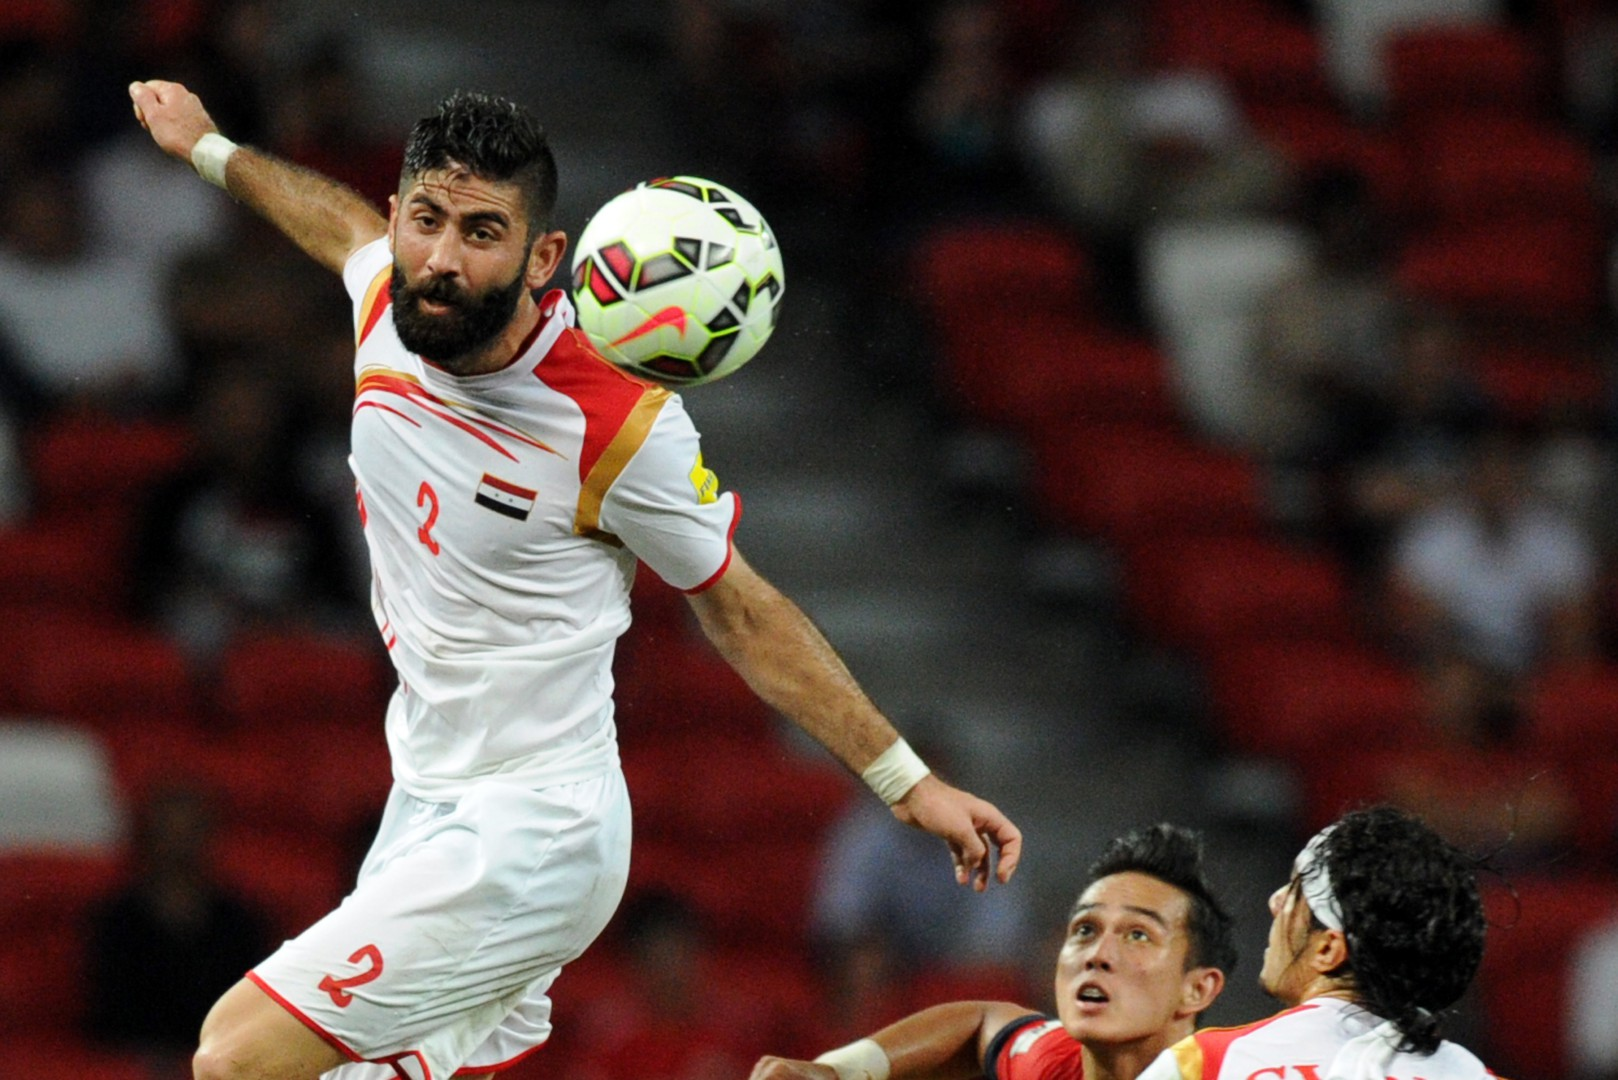 (151117) -- SINGAPORE, Nov. 17, 2015 (Xinhua) -- Syria's Ahmad Alsaleh (L) heads the ball during the 2018 FIFA World Cup Group E Asia qualifier match between Singapore and Syria at Singapore's National Stadium, Nov. 17, 2015. Singapore lost 1-2. (Xinhua/Then Chih Wey) ****Authorized by ytfs****